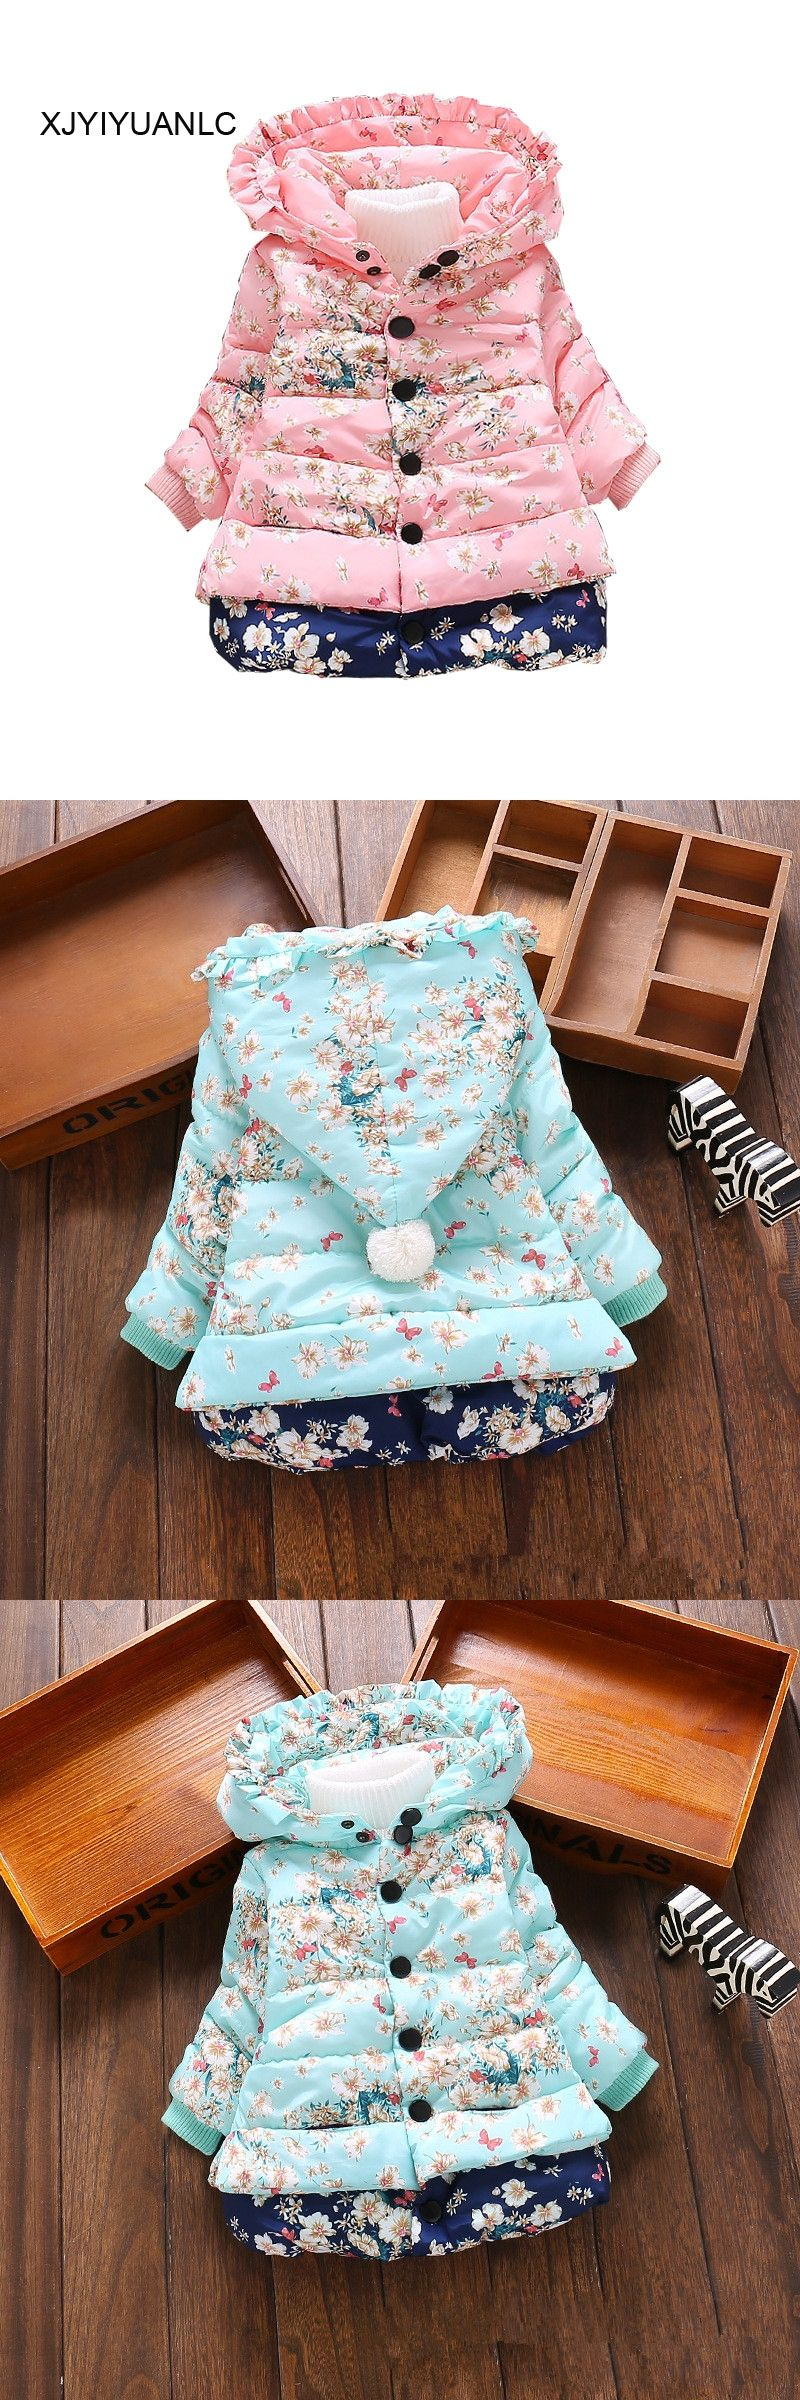 7a7968f7b New Girls Outerwear children s clothing Baby girl fashion printed ...